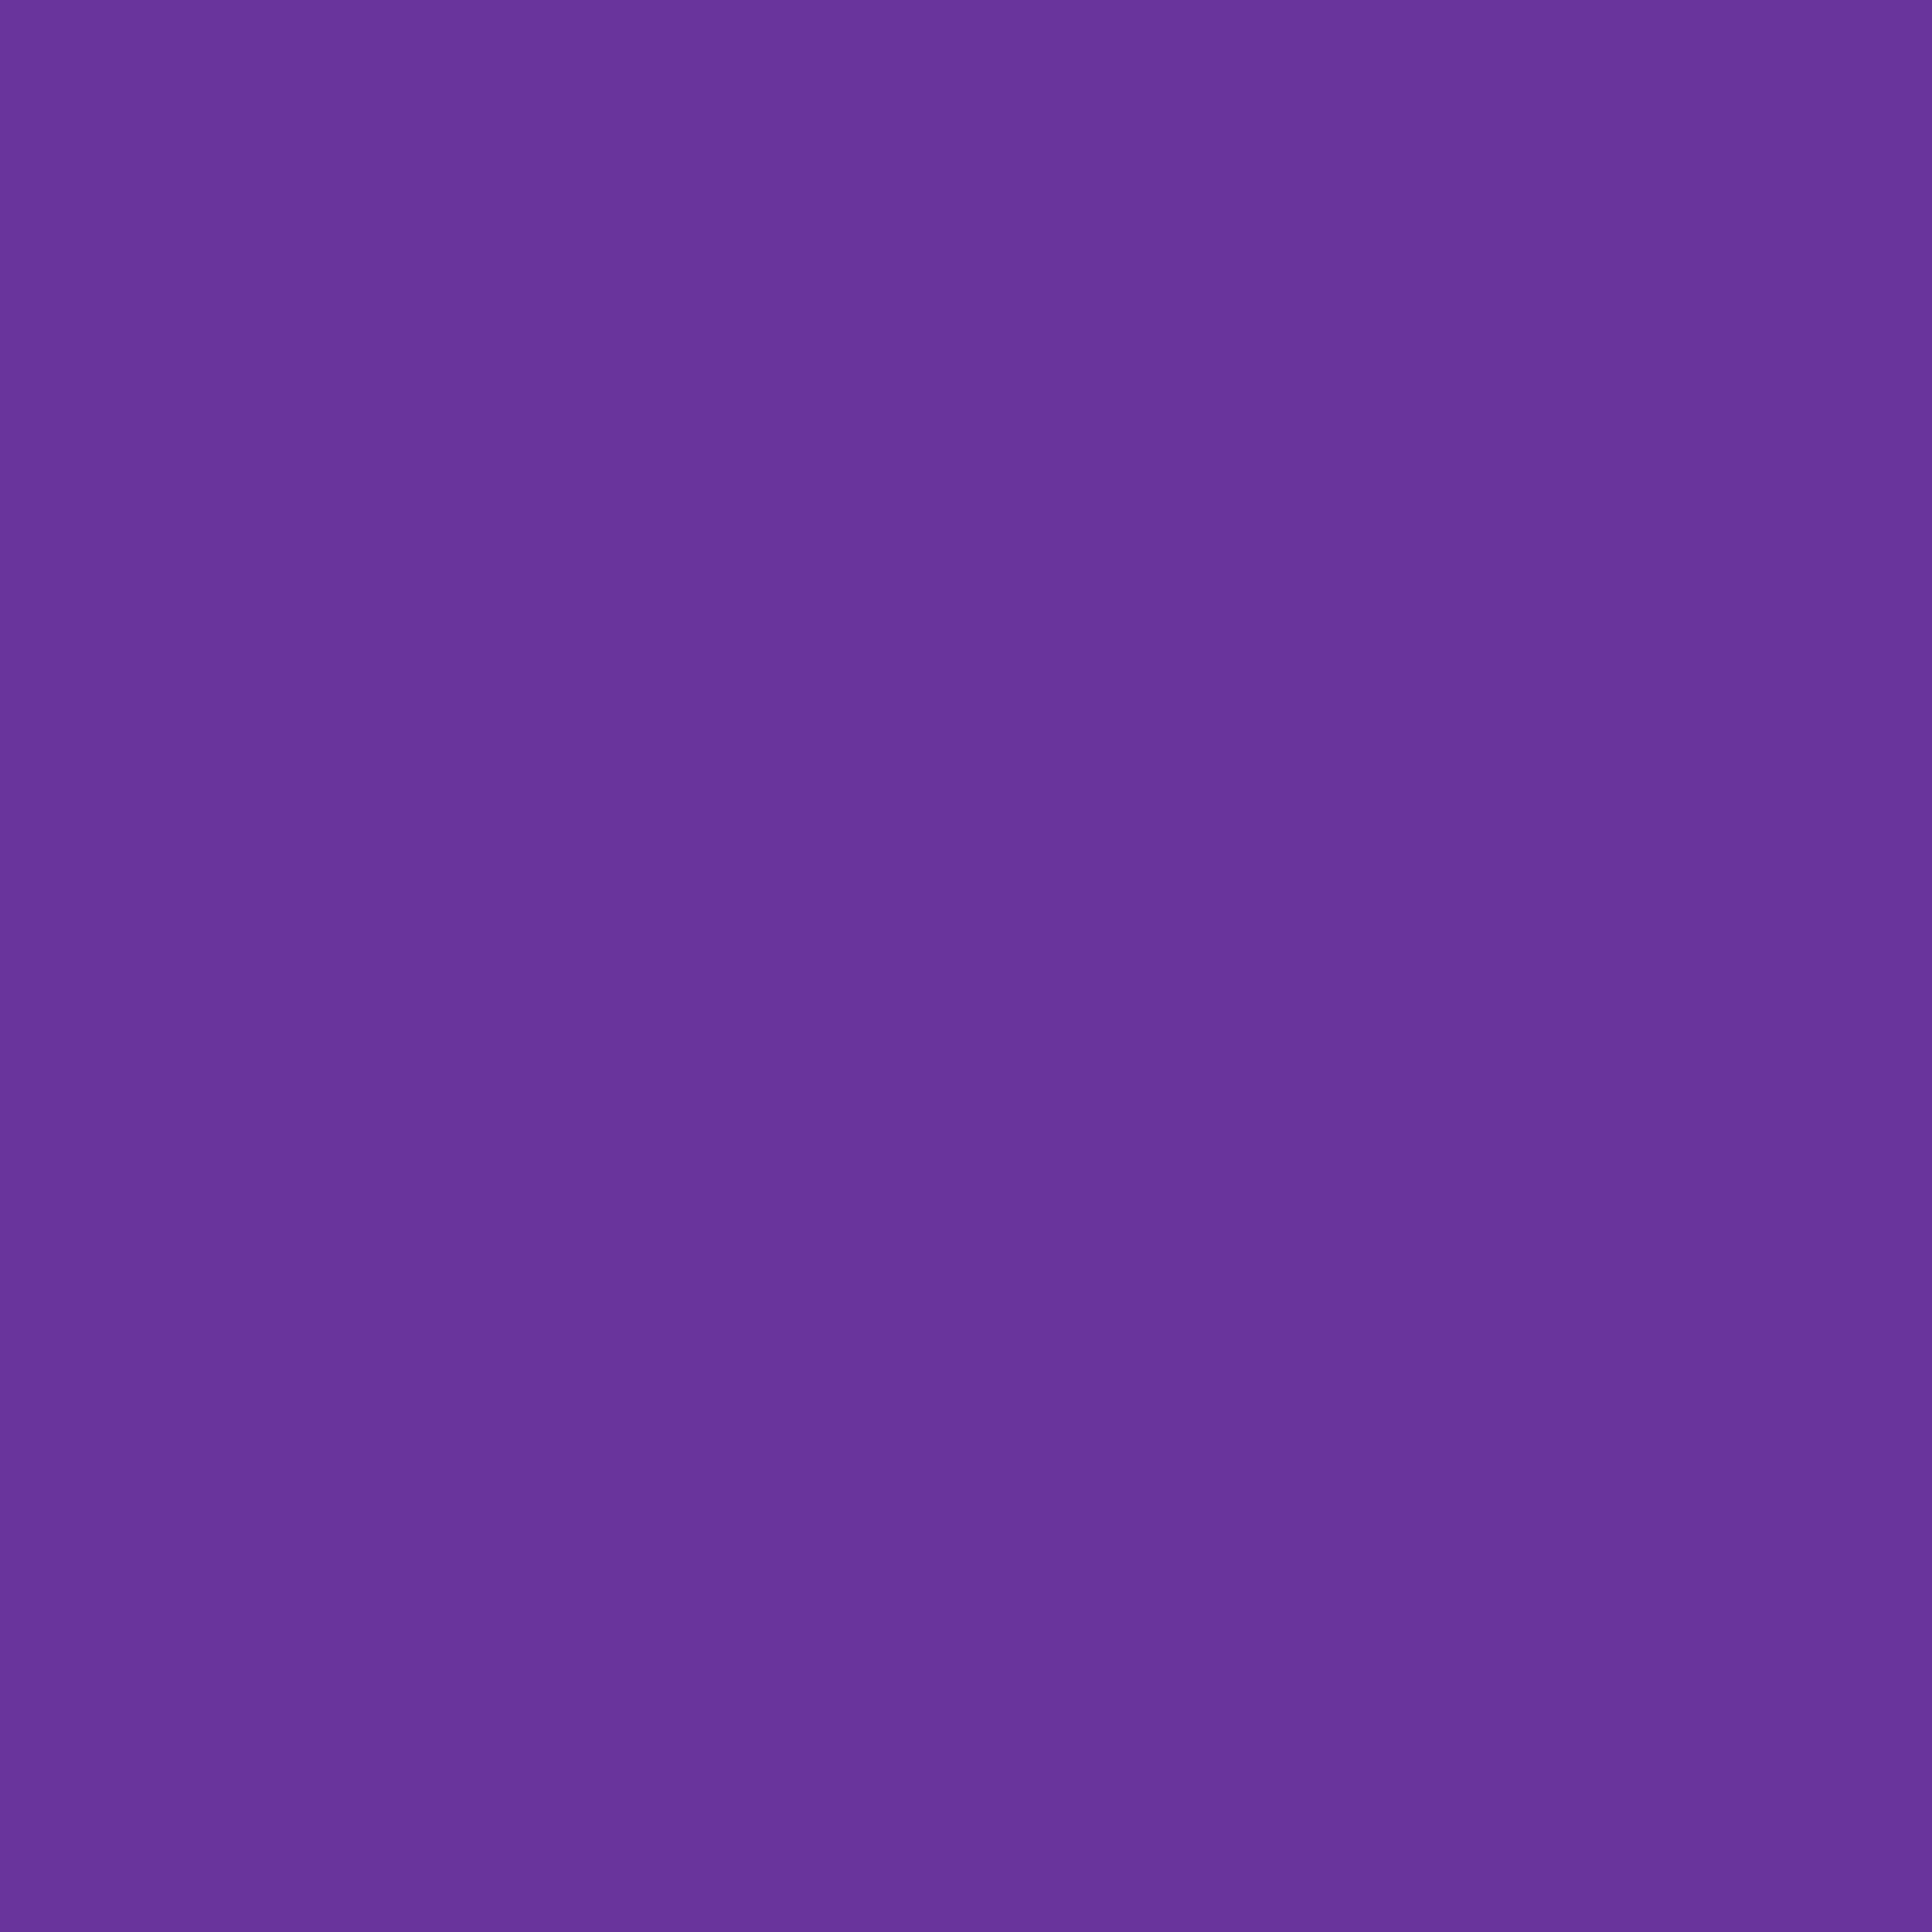 2048x2048 Purple Heart Solid Color Background